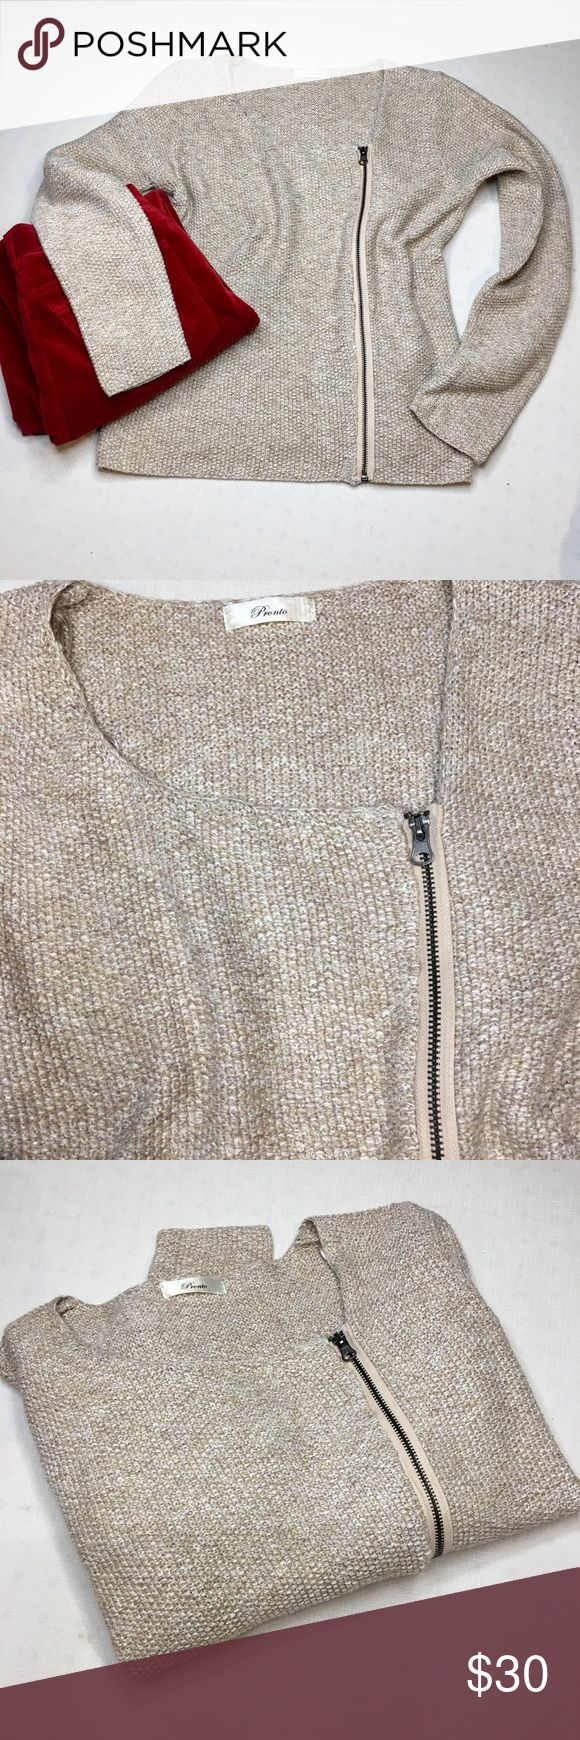 "NWOT Pronto beige sparkle zip up sweater This sweater is a must have for the holidays. wear with some red pants for your Christmas outfit. Excellent condition no flaws. Size medium. Bust 40"" length 24"". 80% polyester 10% Nylon 10% lurex. NWOT Pronto Sweaters Crew & Scoop Necks"